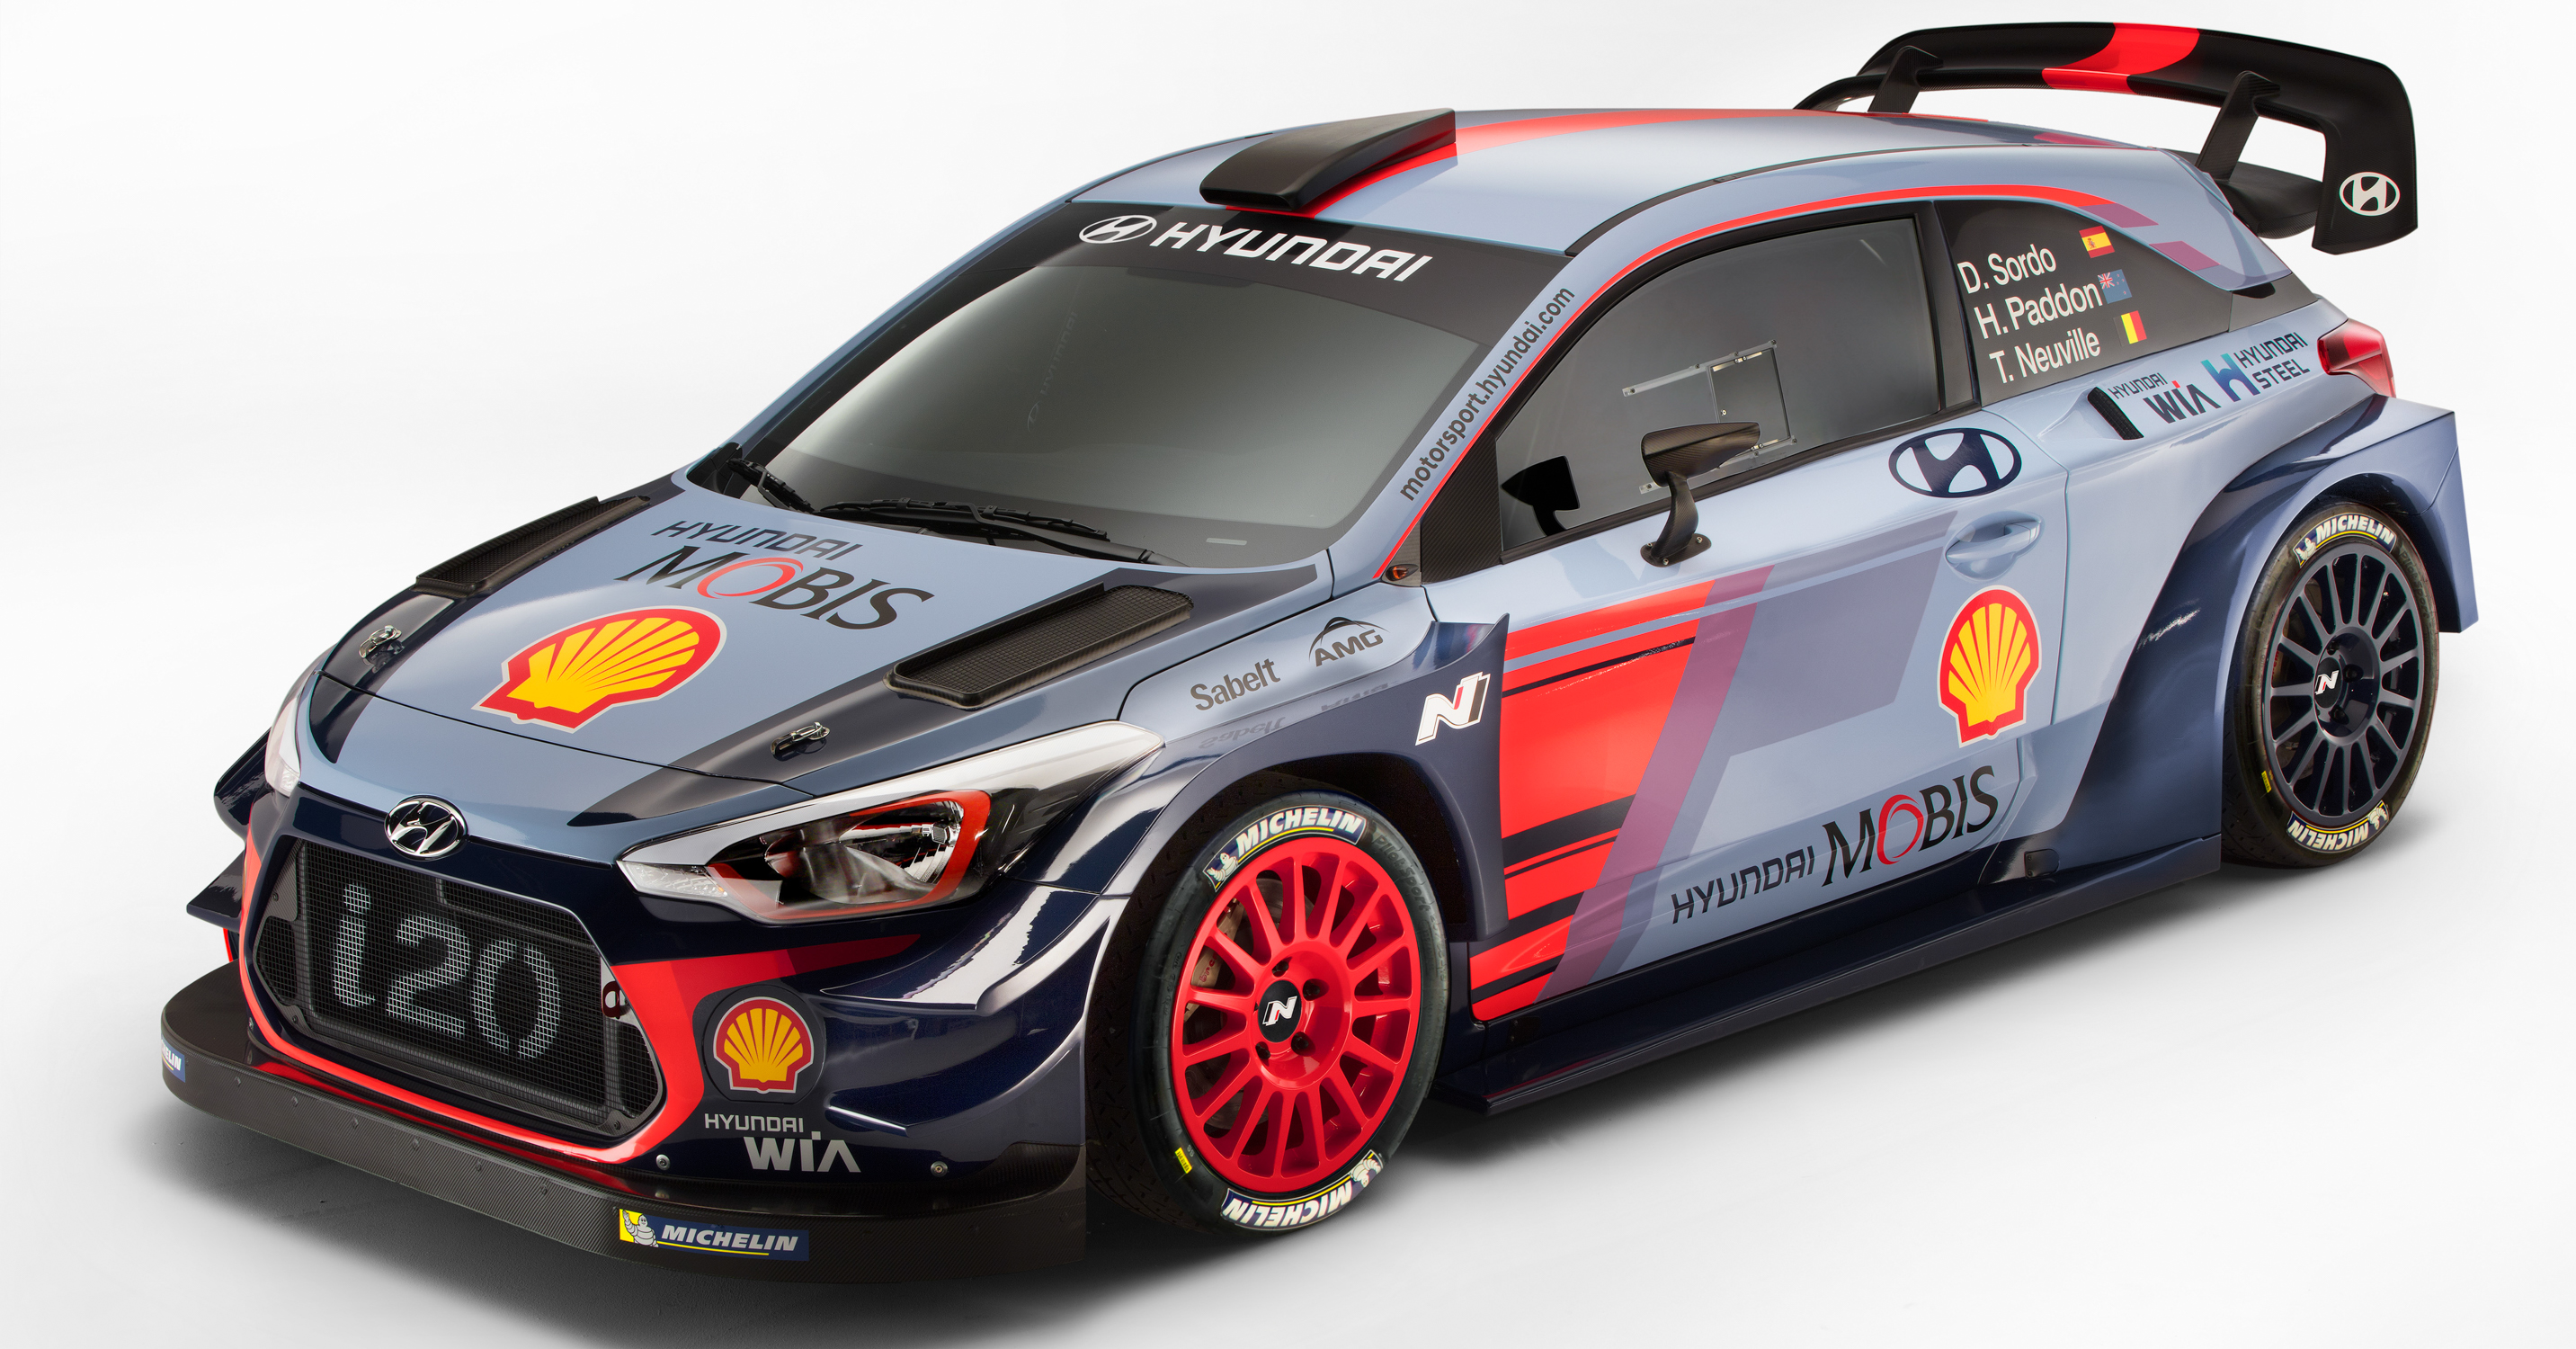 hyundai i20 wrc challenger unveiled more aero more power for rally